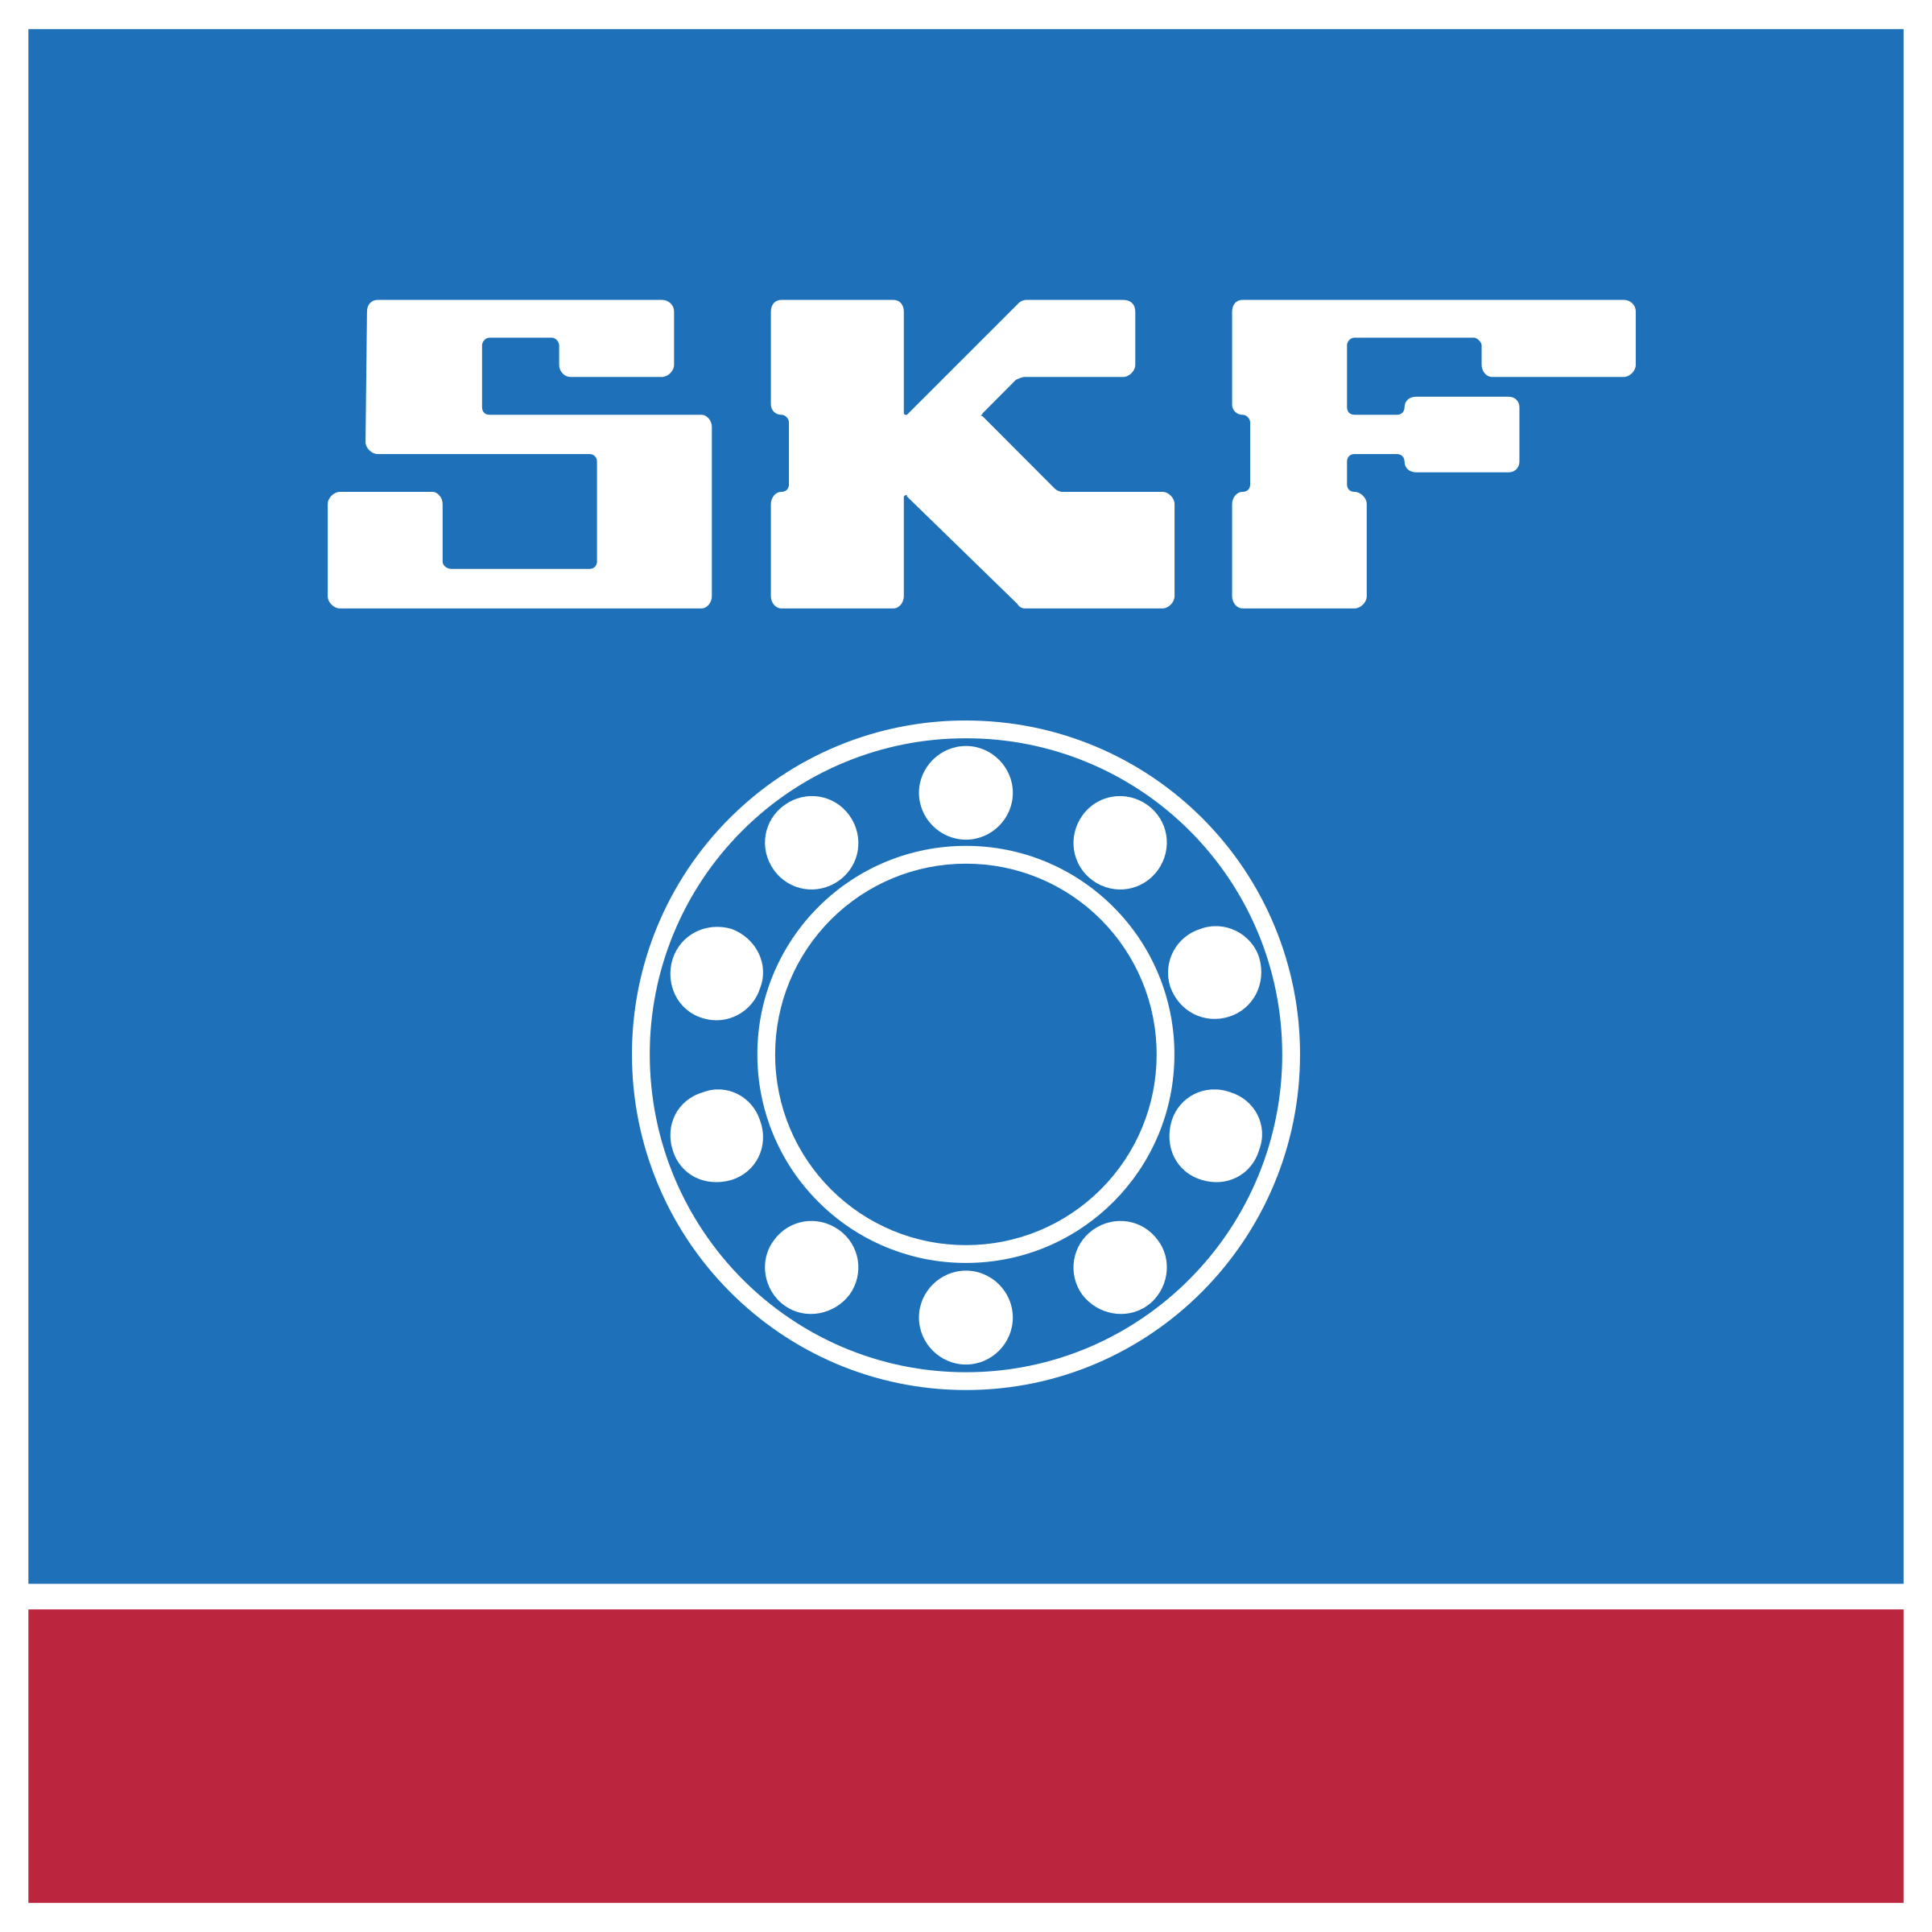 https://boxenstop-baumbach.de/wordpress/wp-content/uploads/2019/06/skf-logo-png-transparent.png